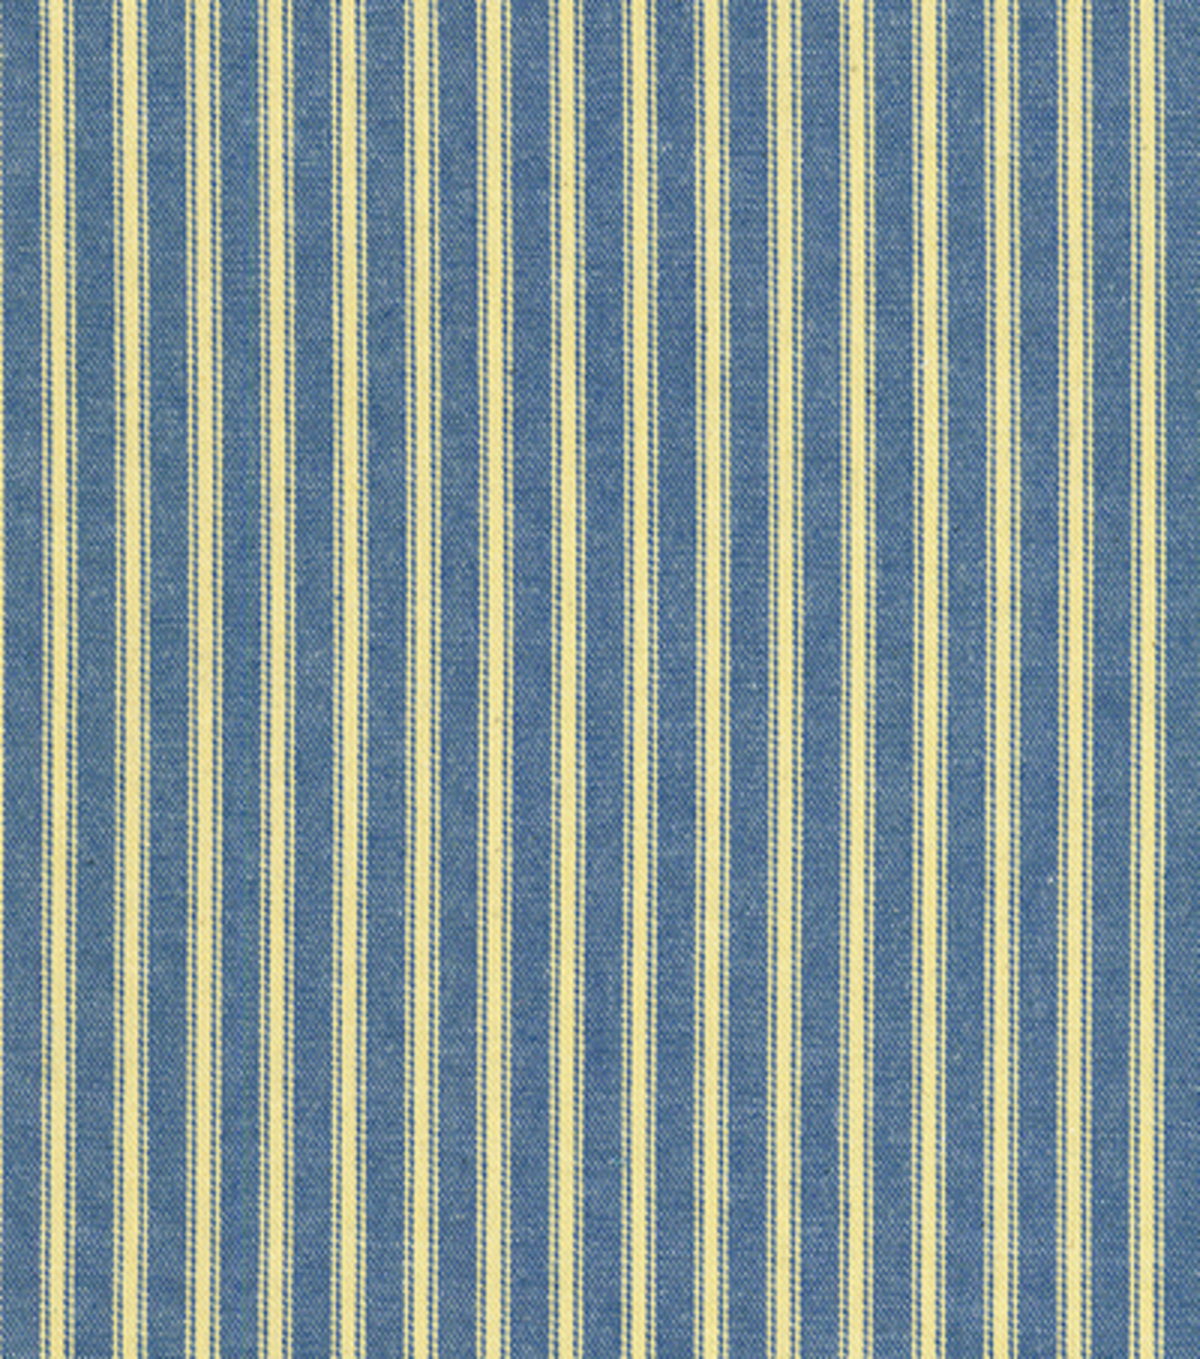 Home Decor 8\u0022x8\u0022 Fabric Swatch-Covington New Woven Ticking